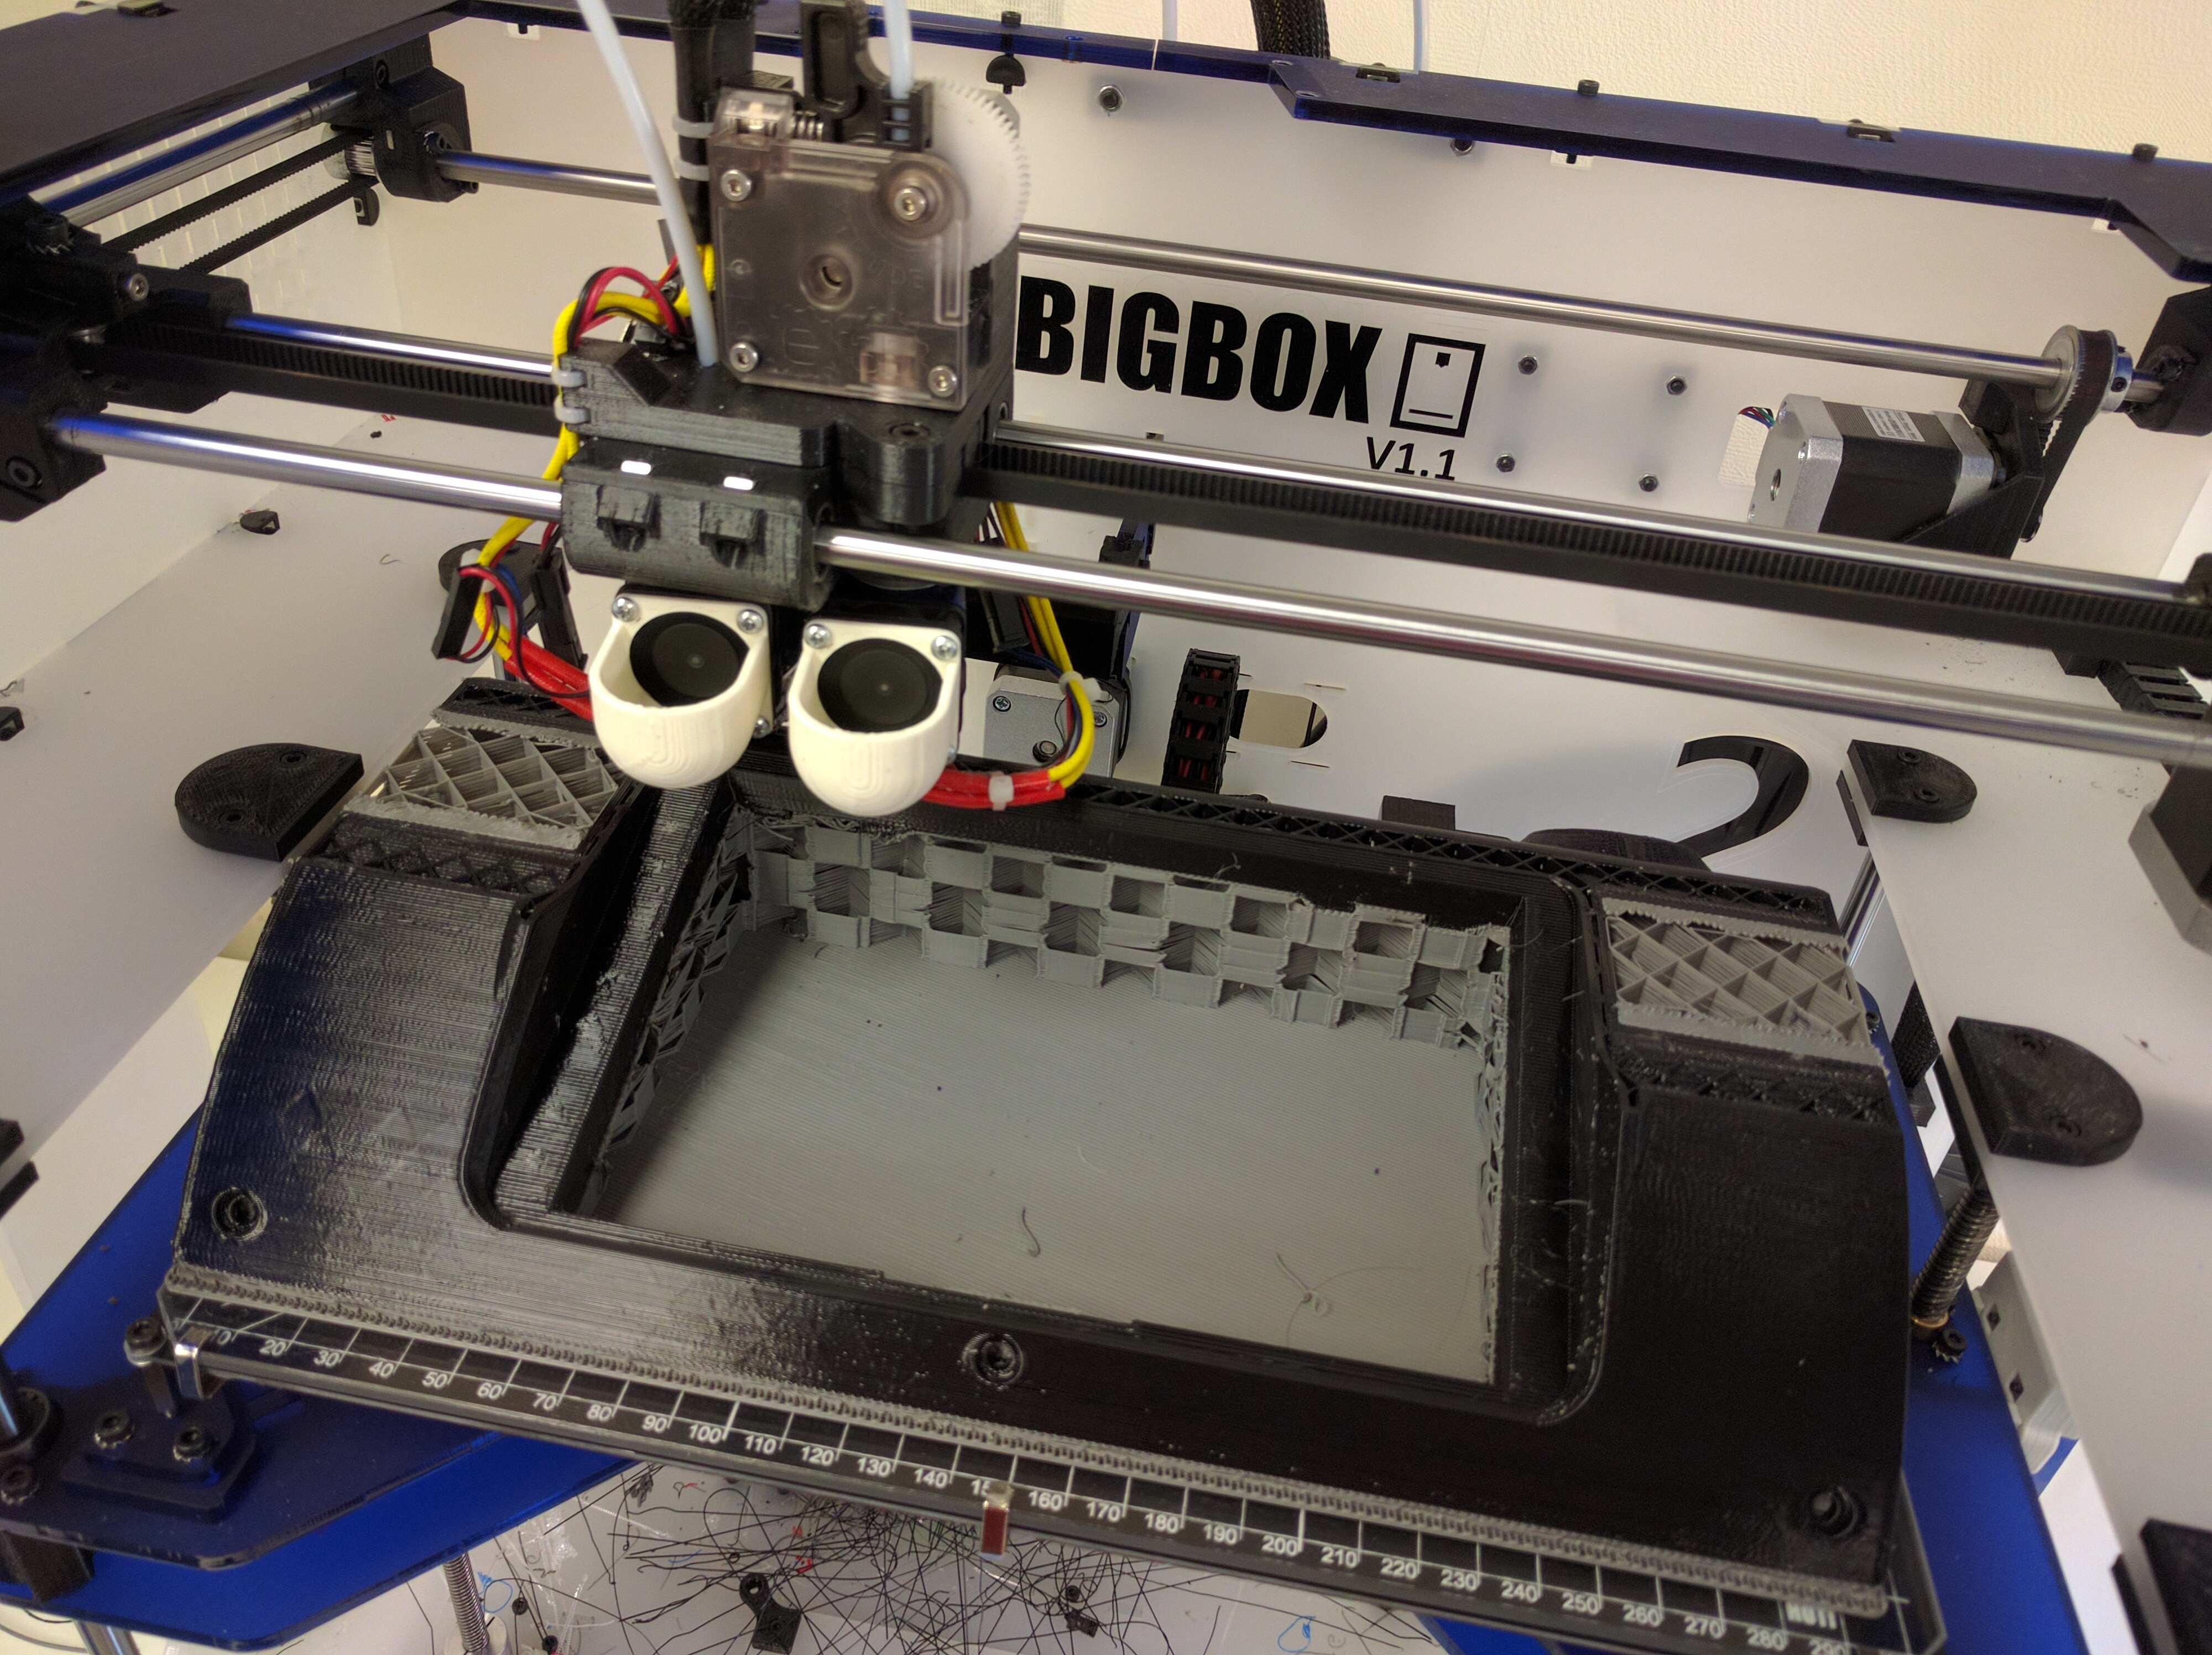 Picture of Printing.